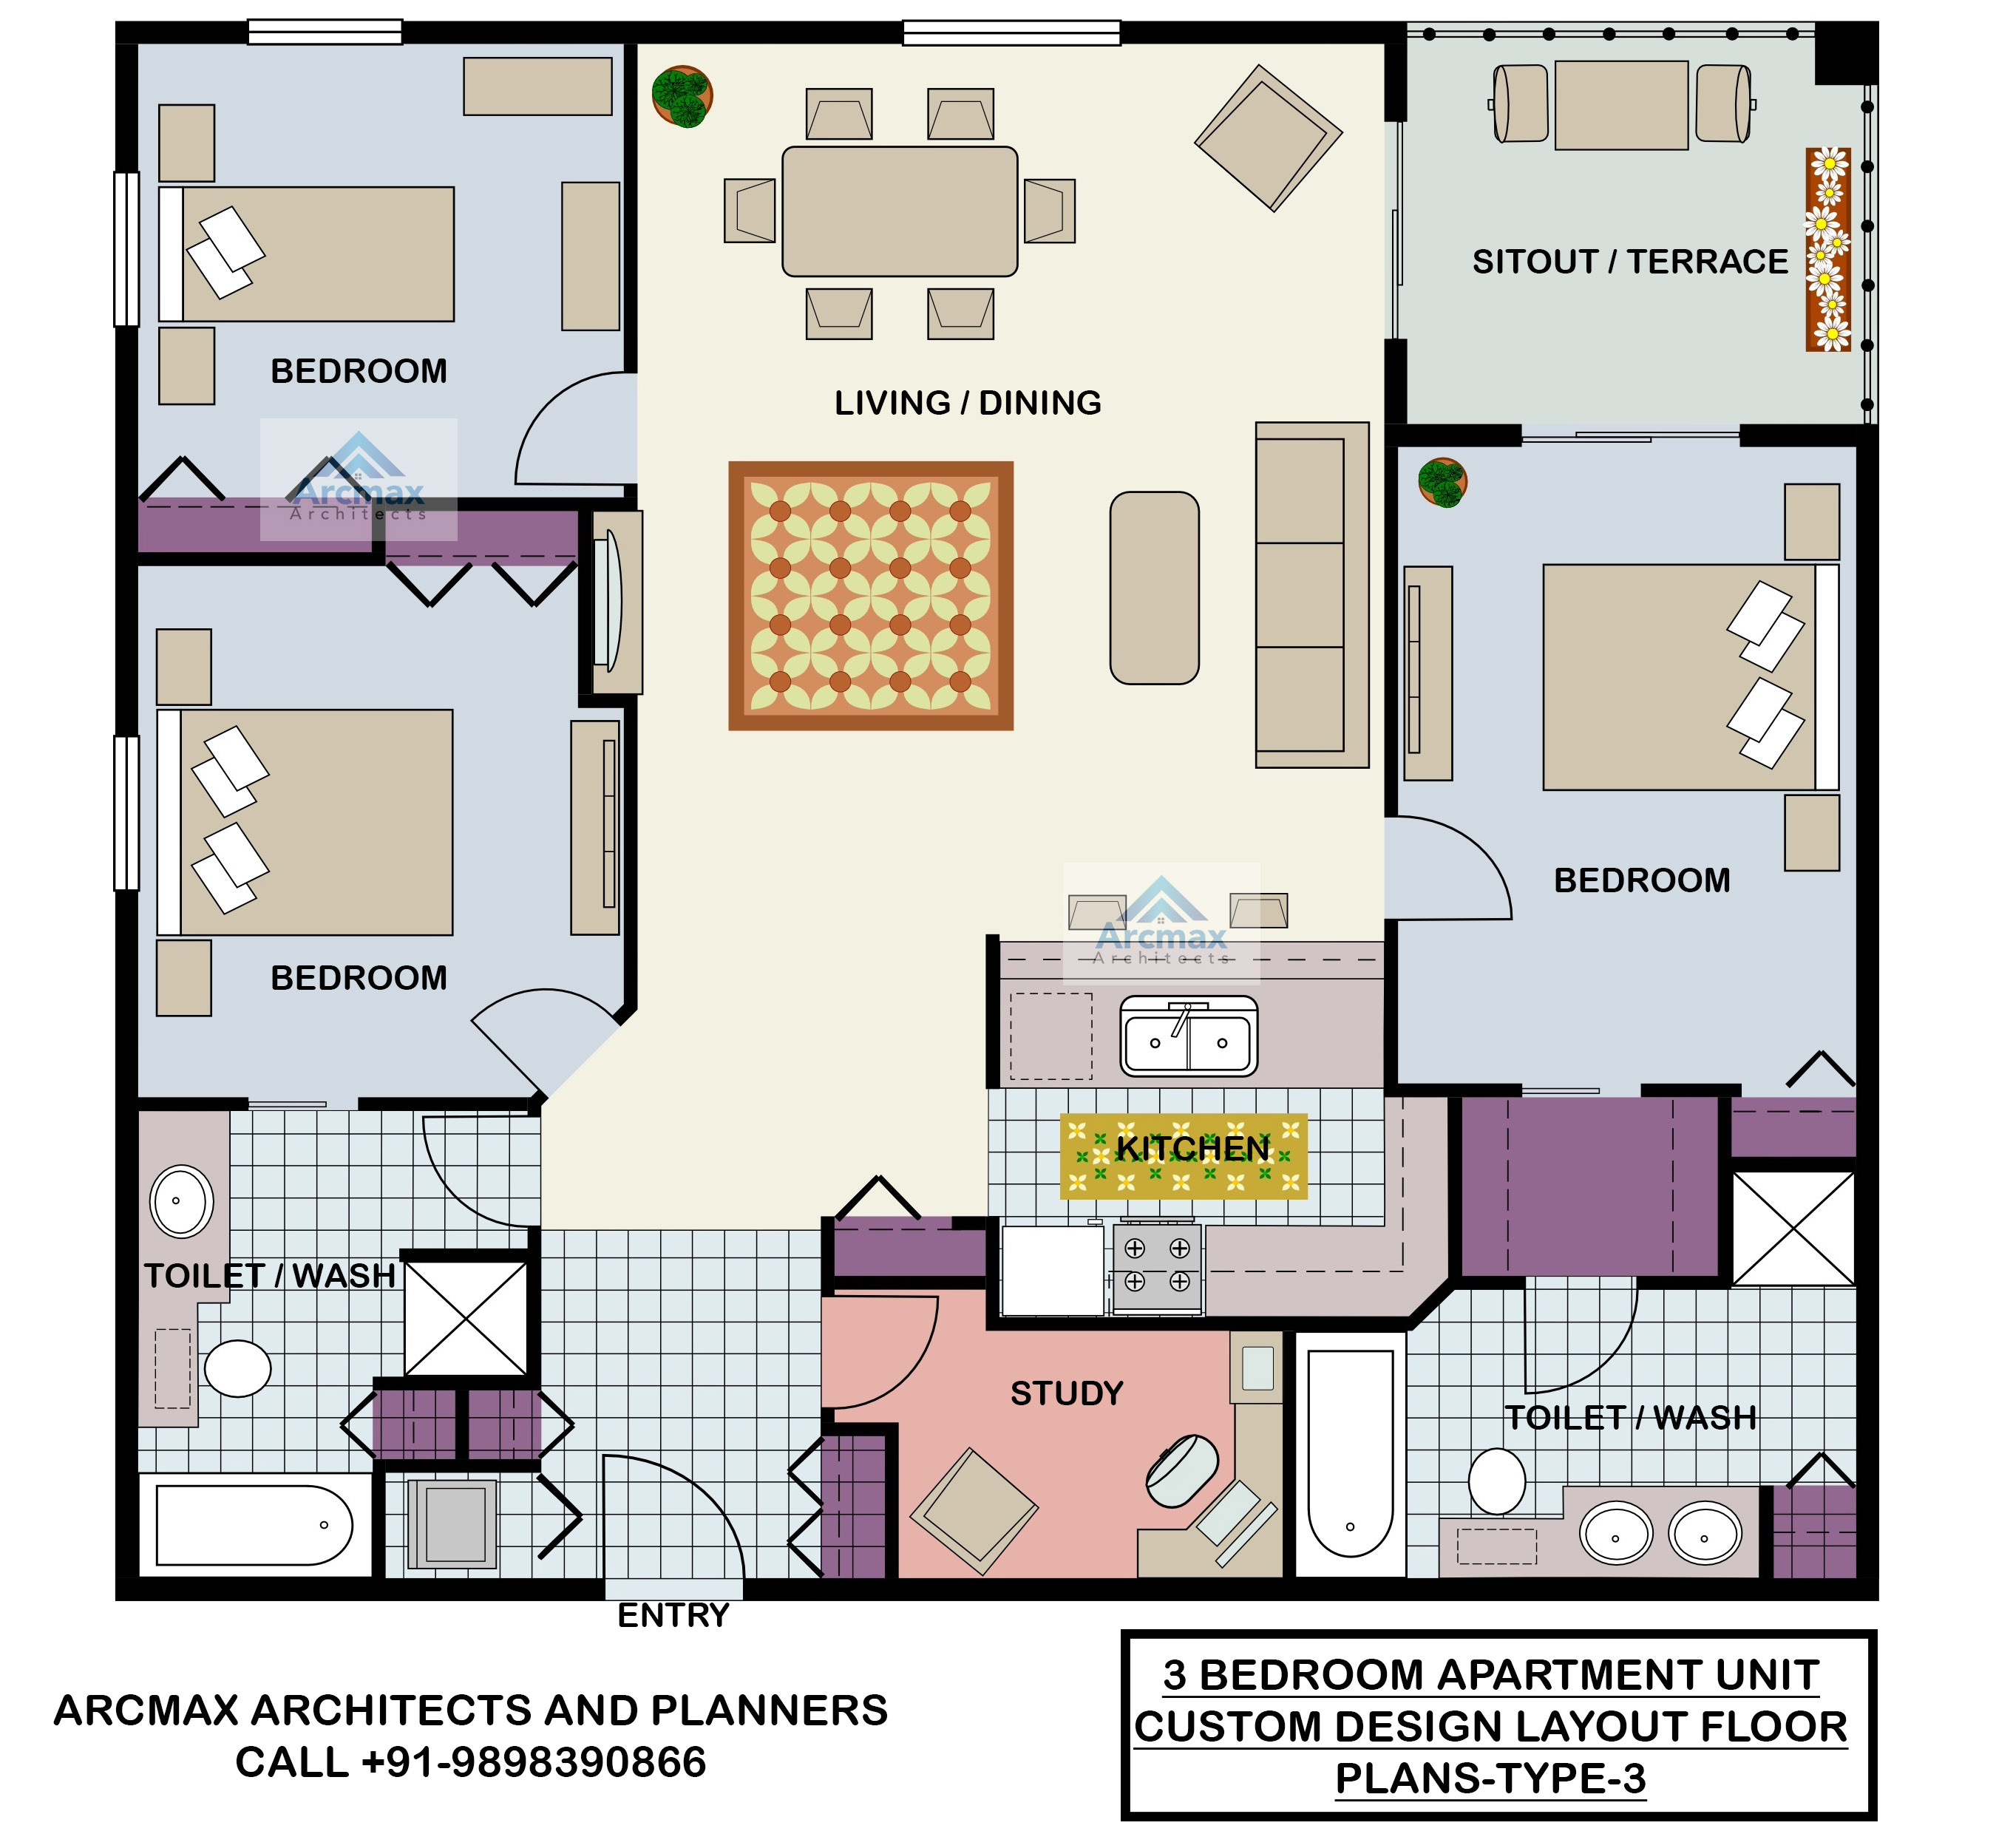 Home Plans and Residence Plans  Arcmax Architects